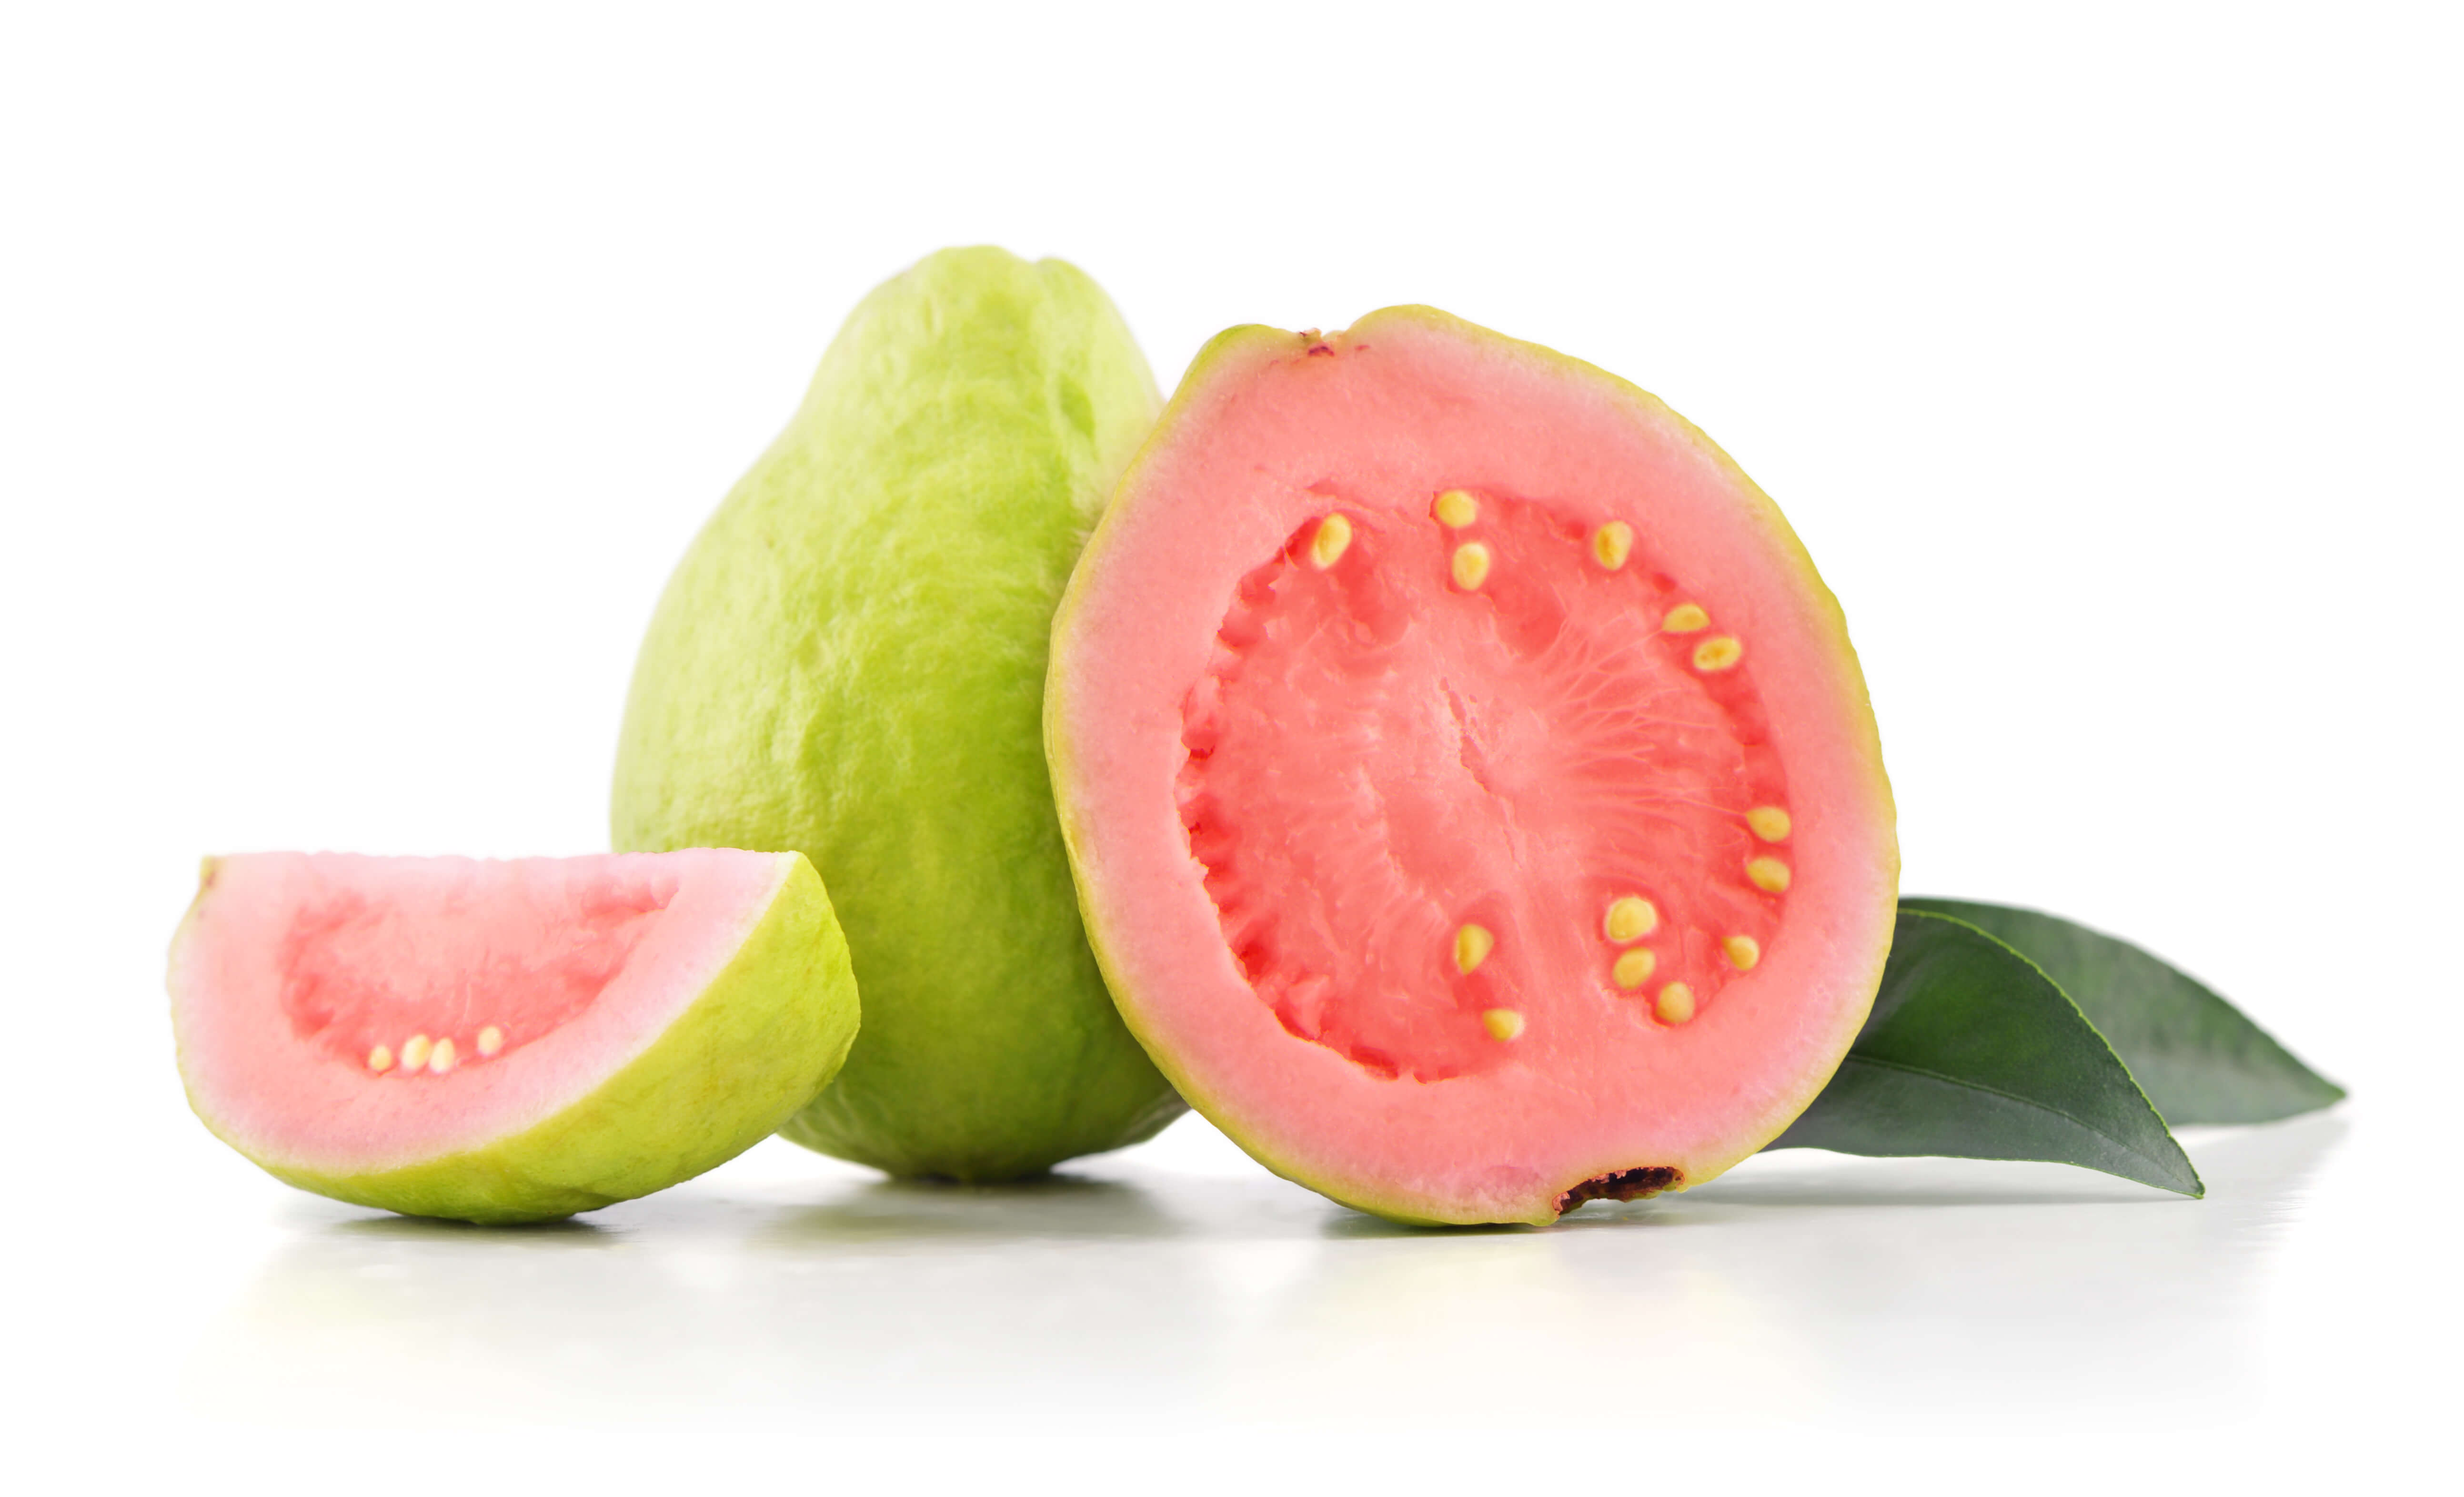 Whole and cut pink guava fruits